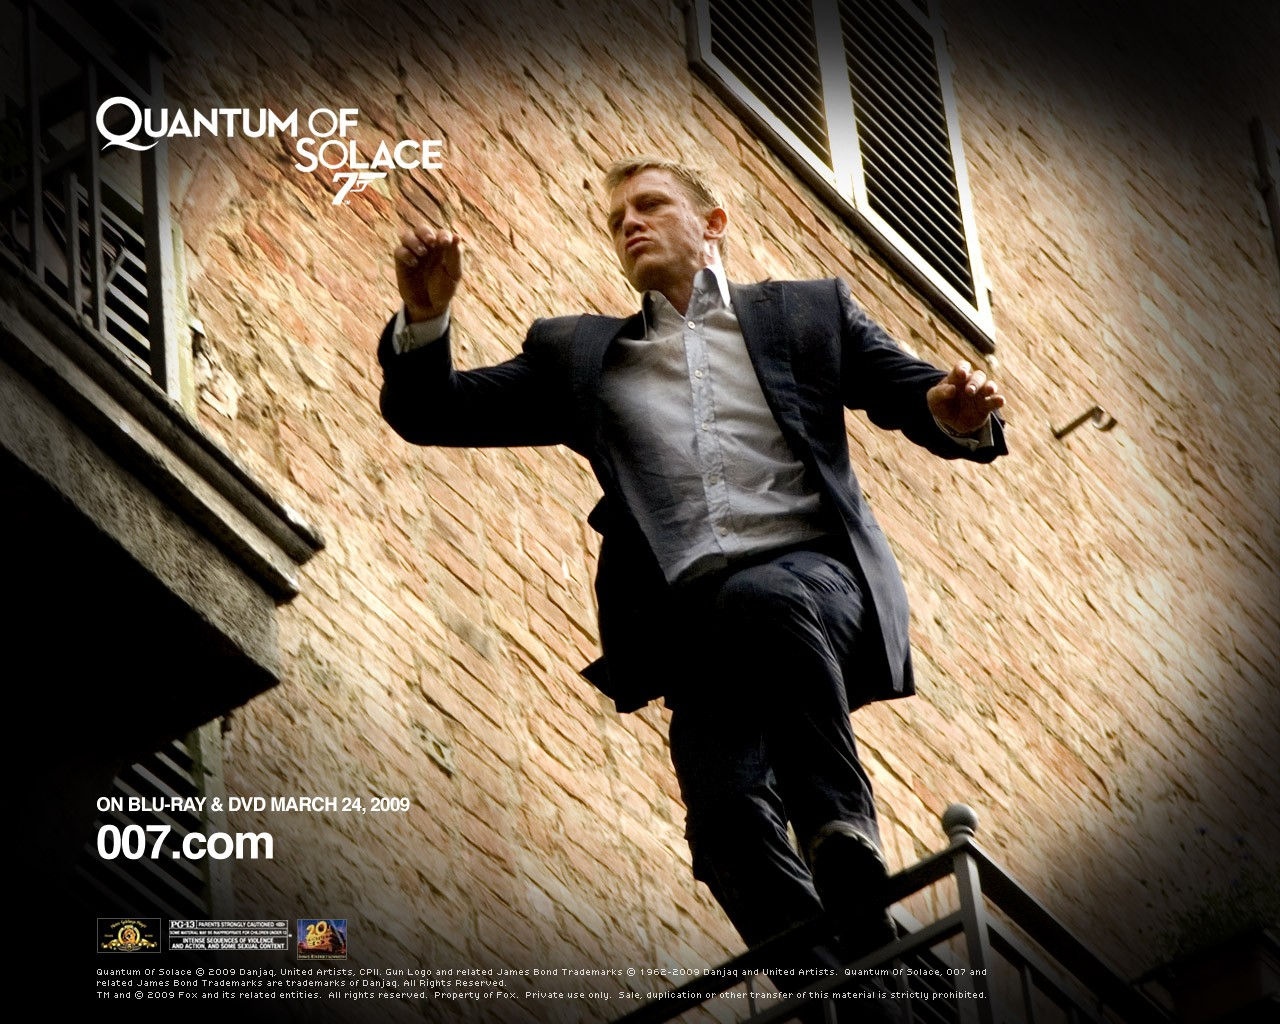 Un wallpaper di Daniel Craig che interpreta James Bond nel film 'Quantum of Solace'